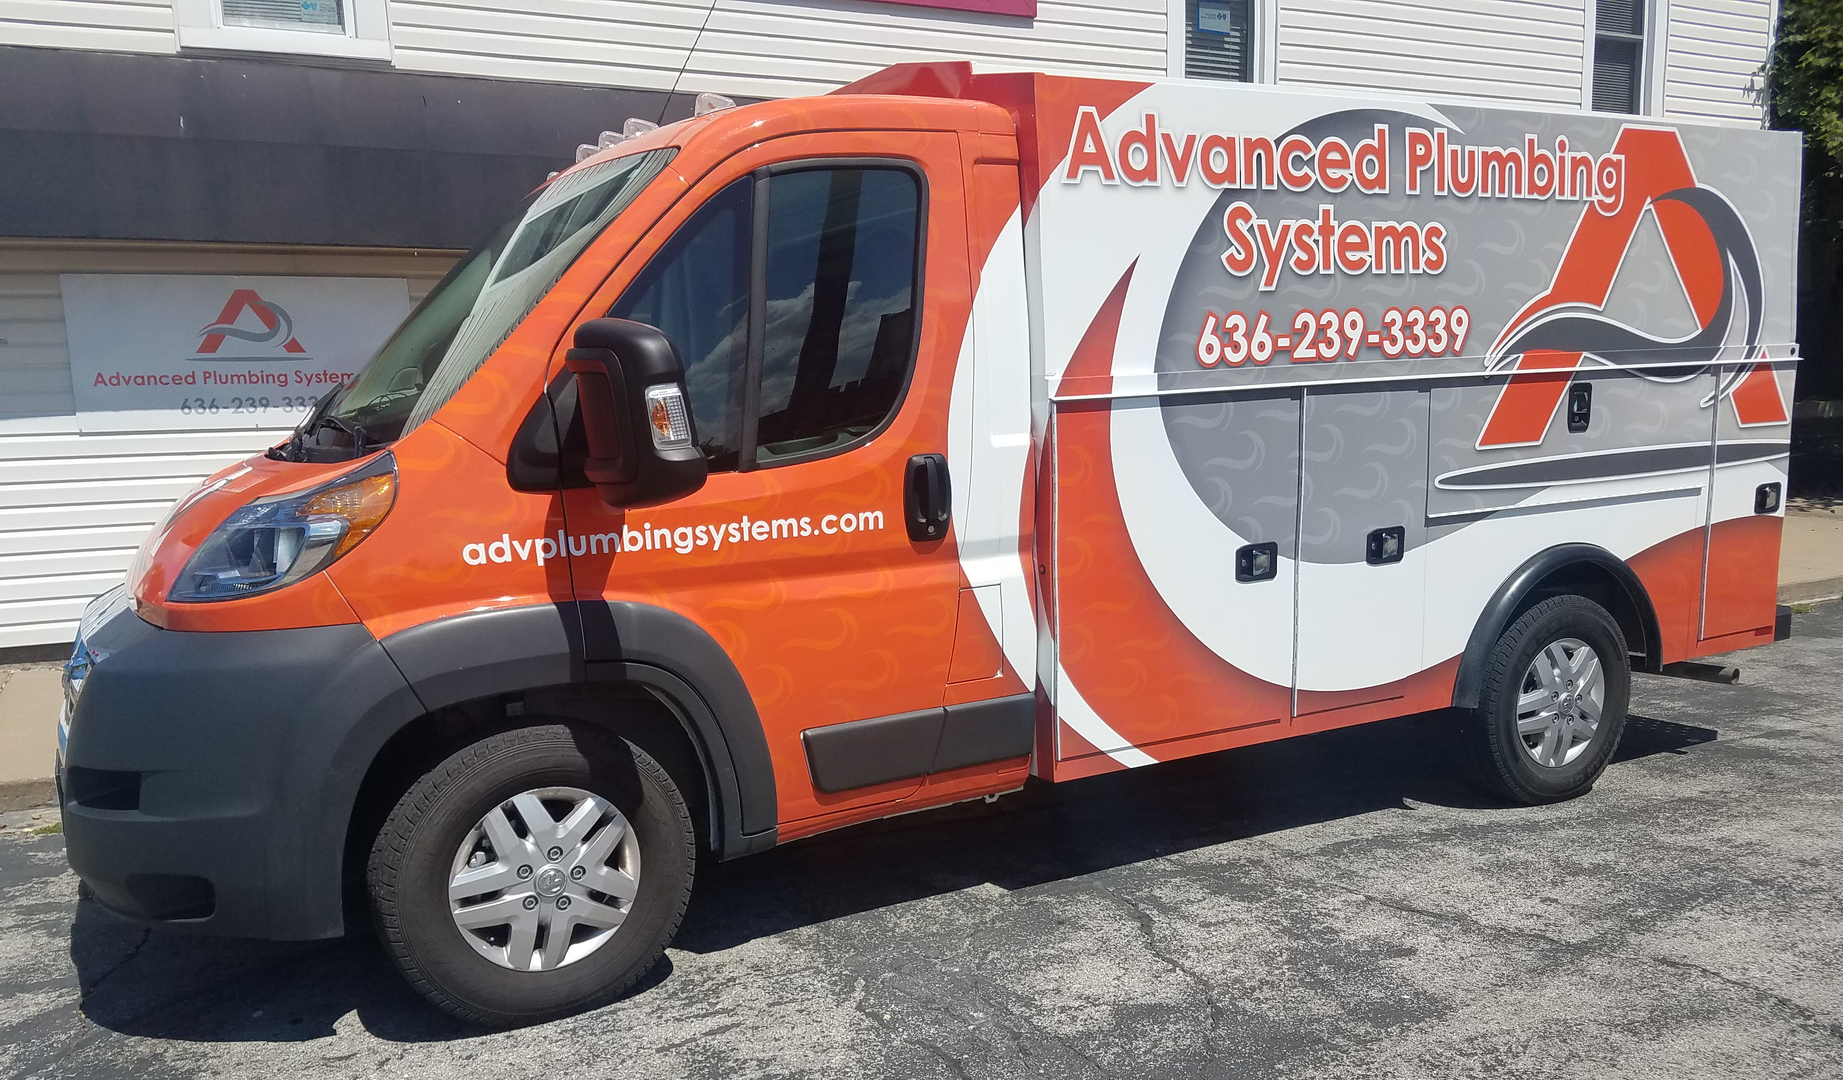 heating plumbing and advanced with